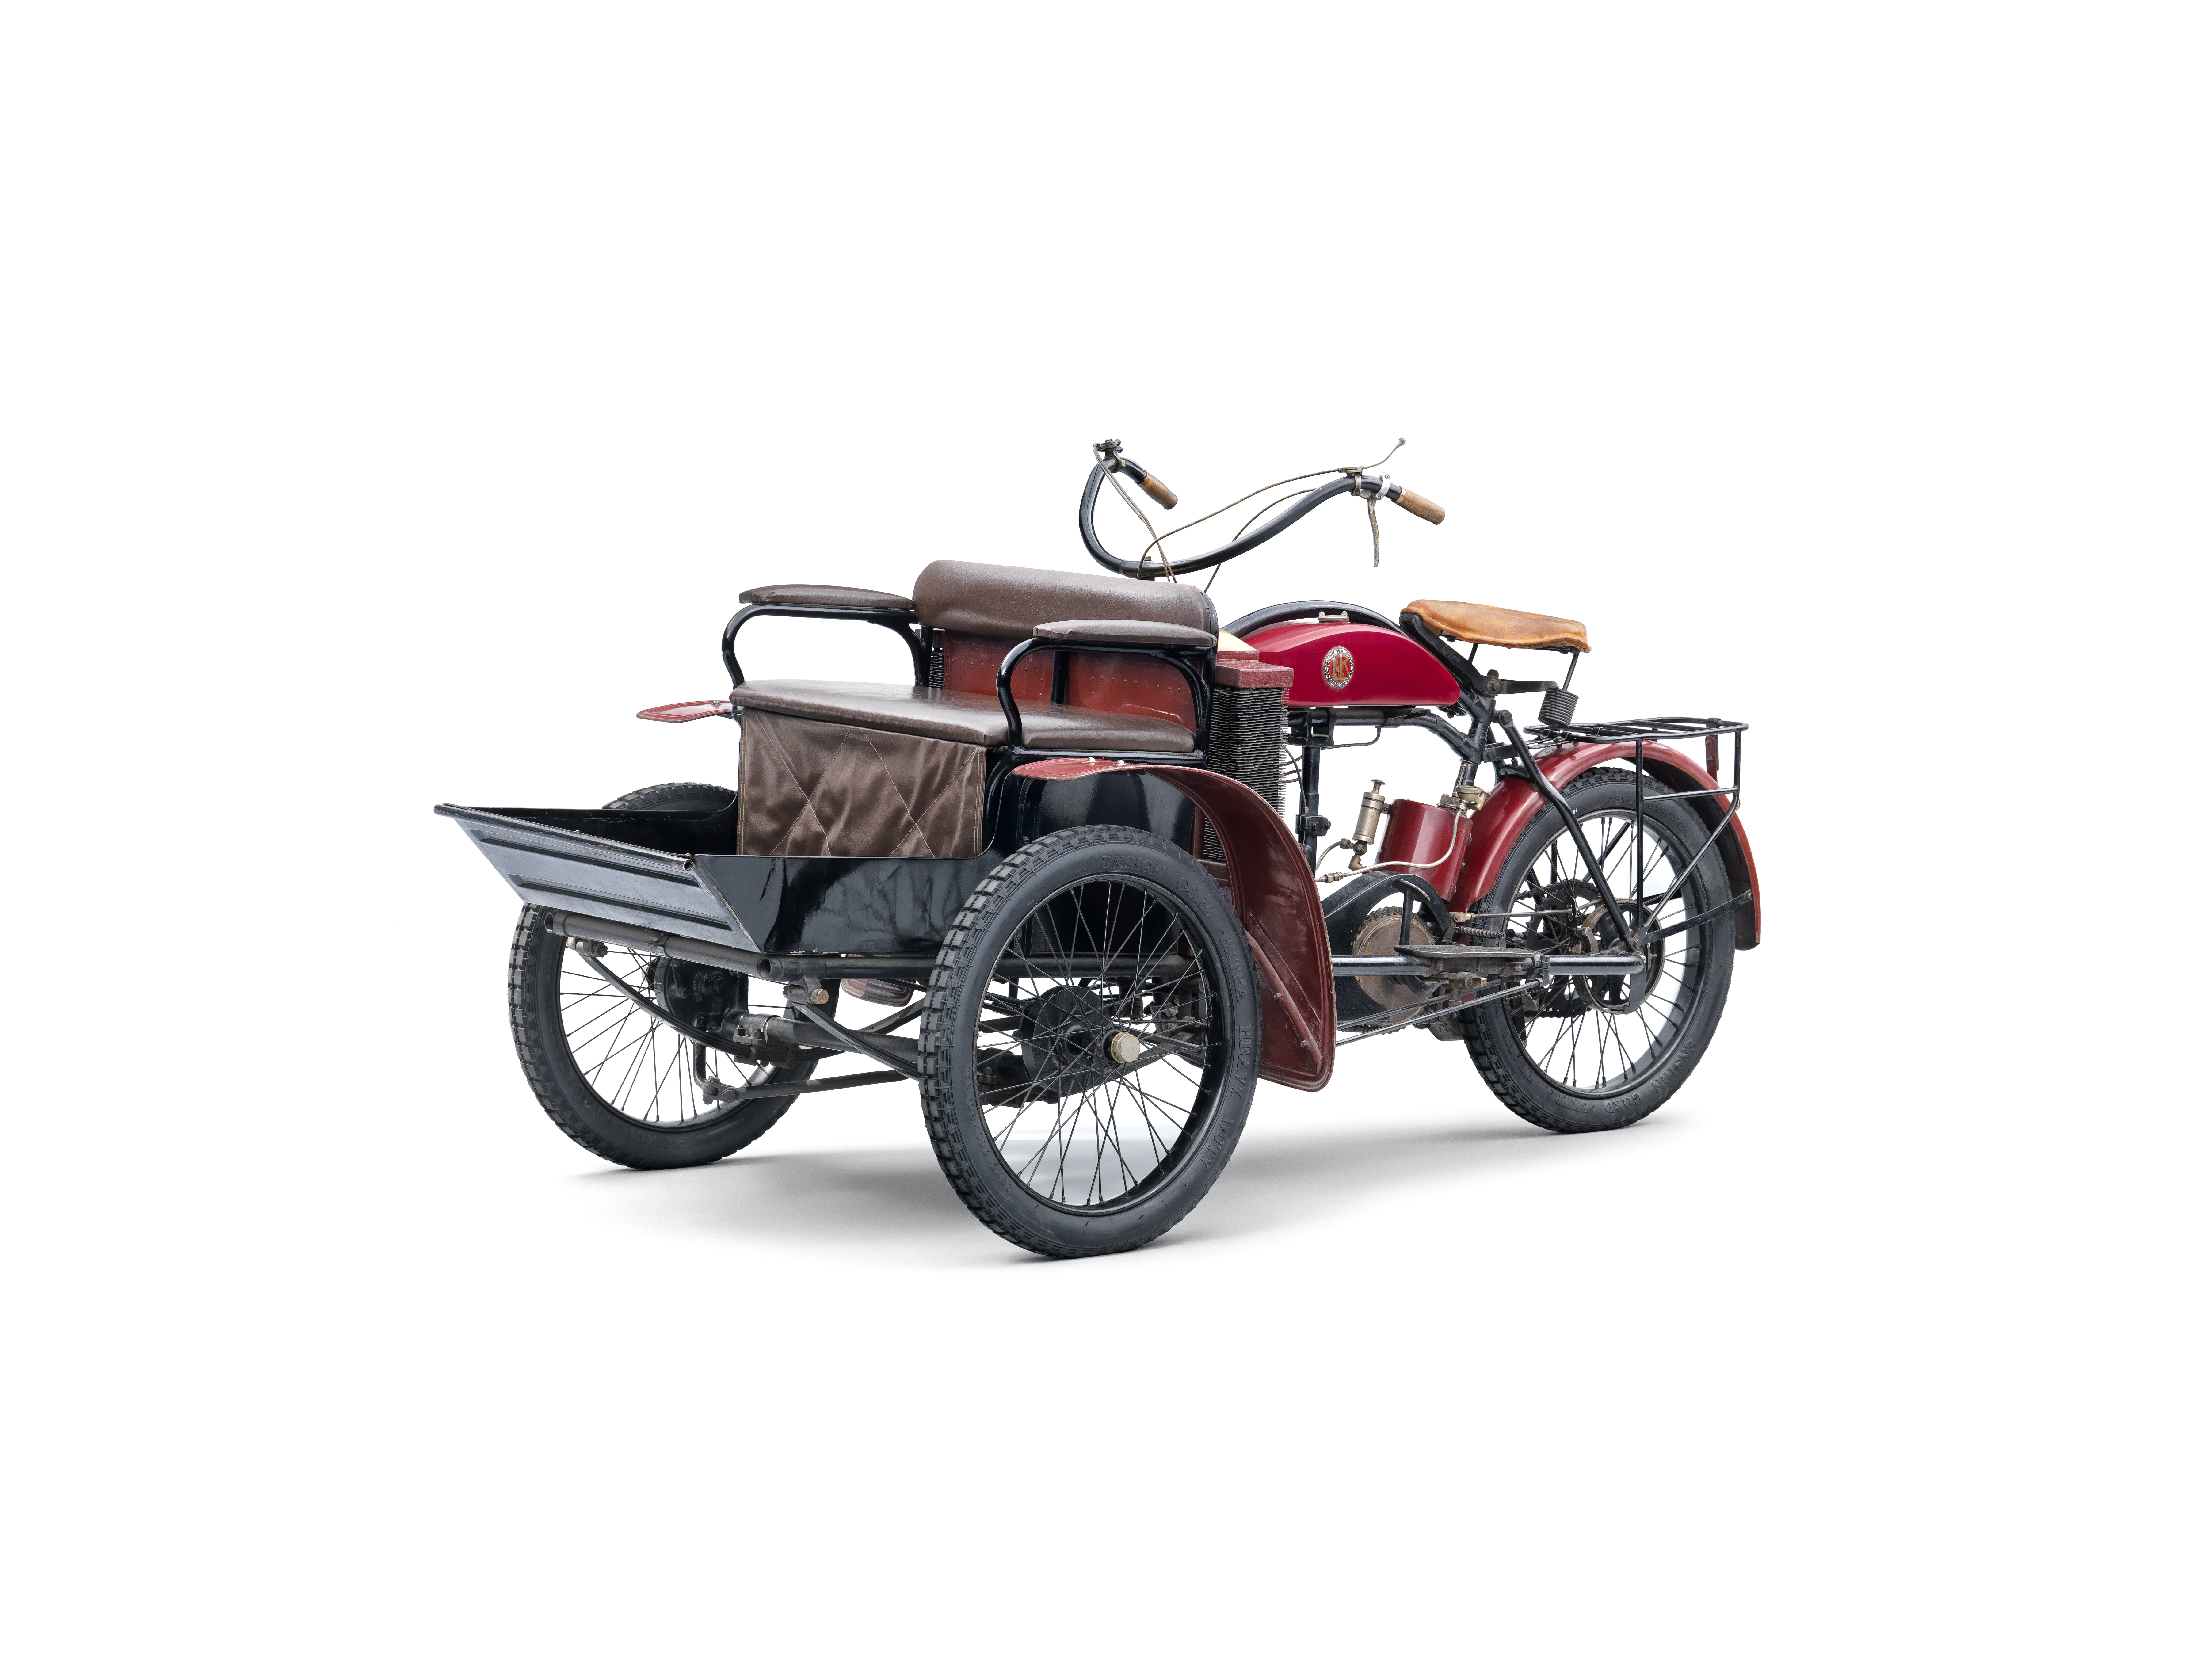 Lesser-known models from SKODA AUTO's 125-year history: The LW three-wheeler from Laurin & Klement - Image 4